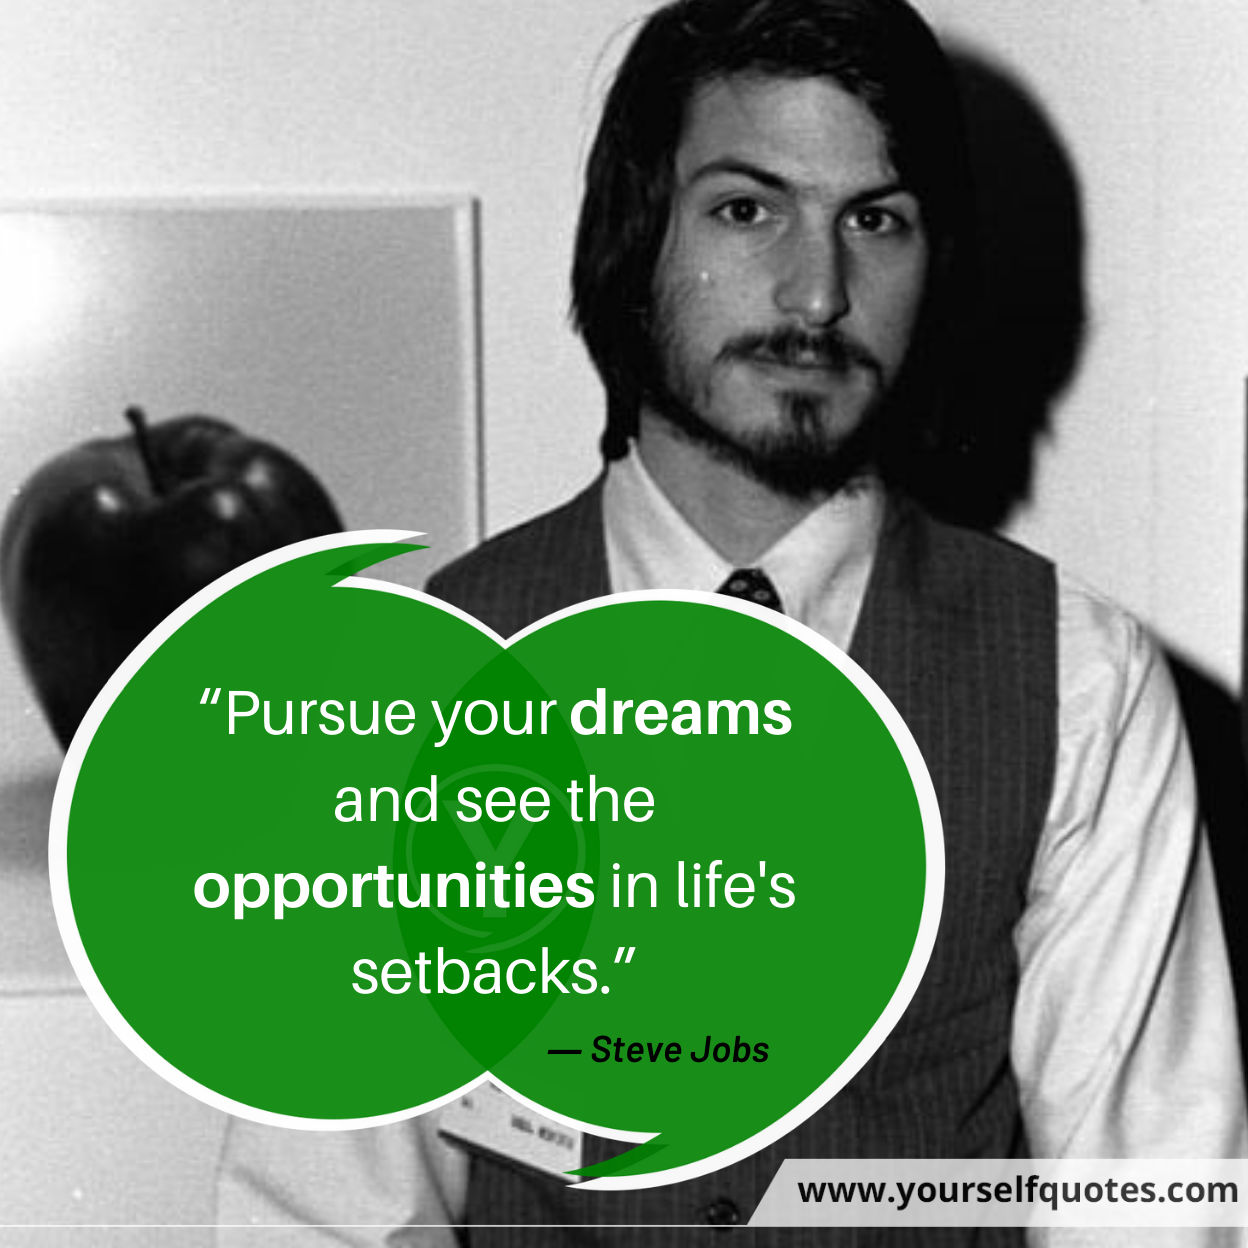 Steve Jobs Quotes on Dreams